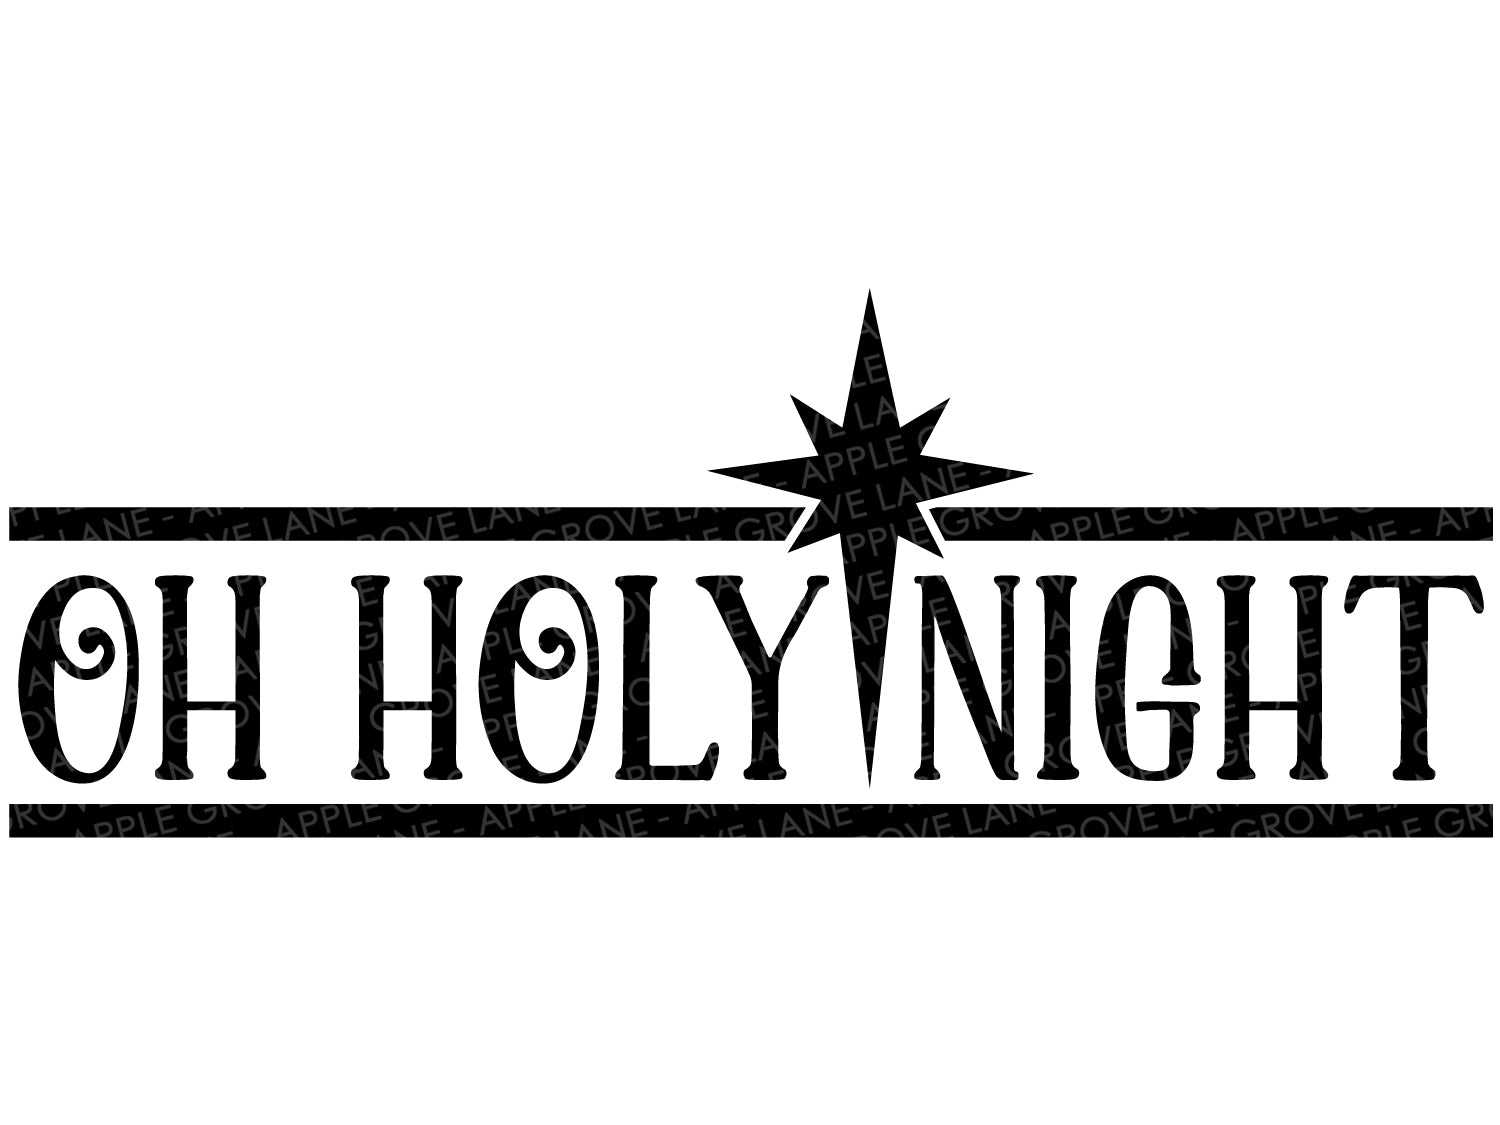 Oh Holy Night Svg - Holy Night Svg - Christmas SVG - Nativity Star Svg - Holy Night Clip Art - Christmas Star Svg - Svg Eps Dxf Png